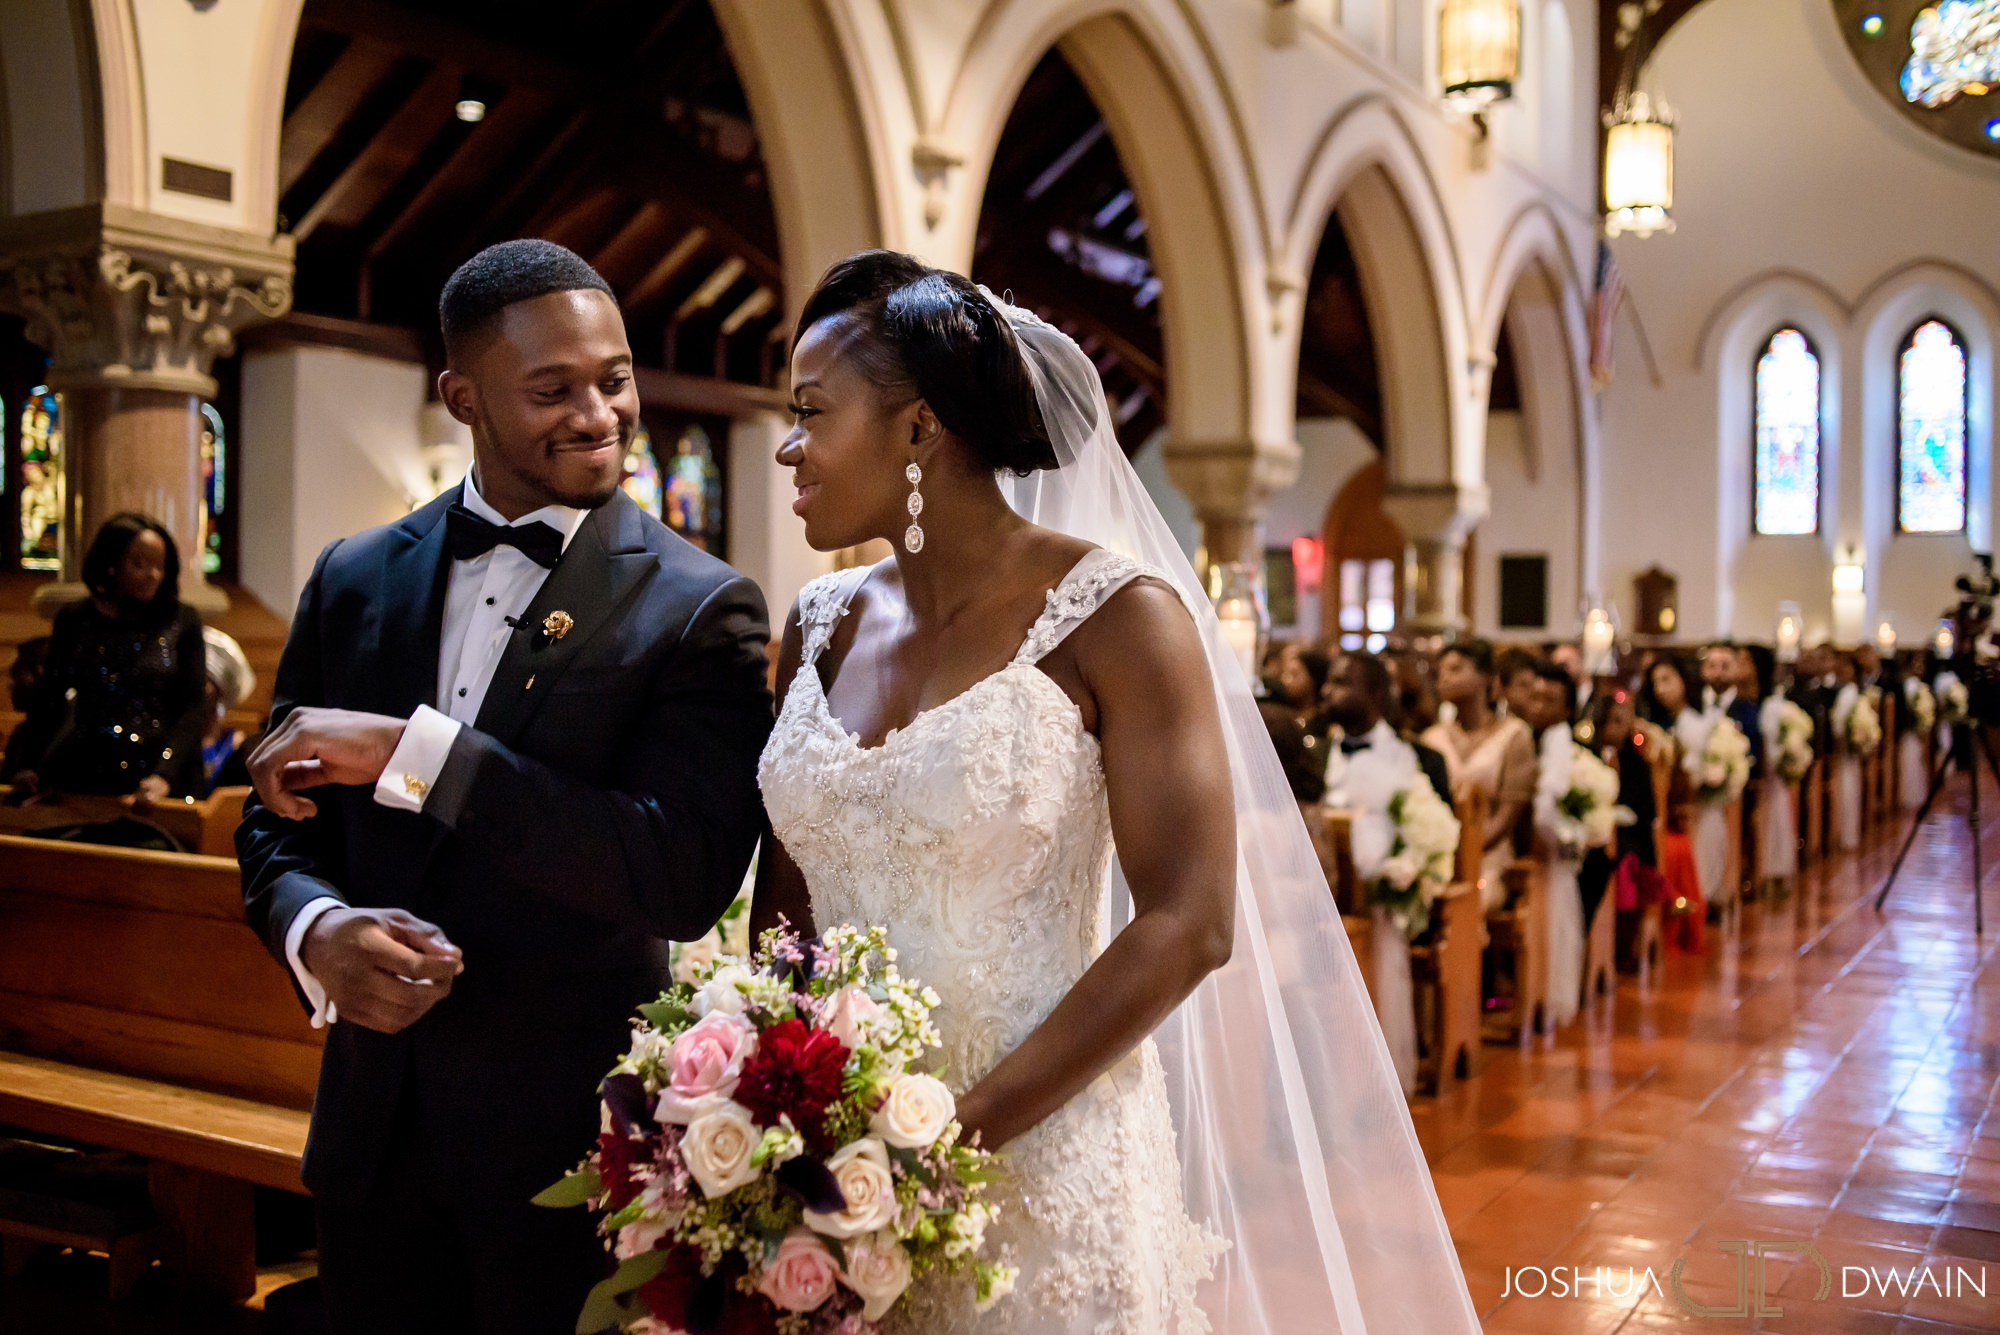 stephanie-richard-15-westmount-country-club-joshua-dwain-nj-wedding-photography